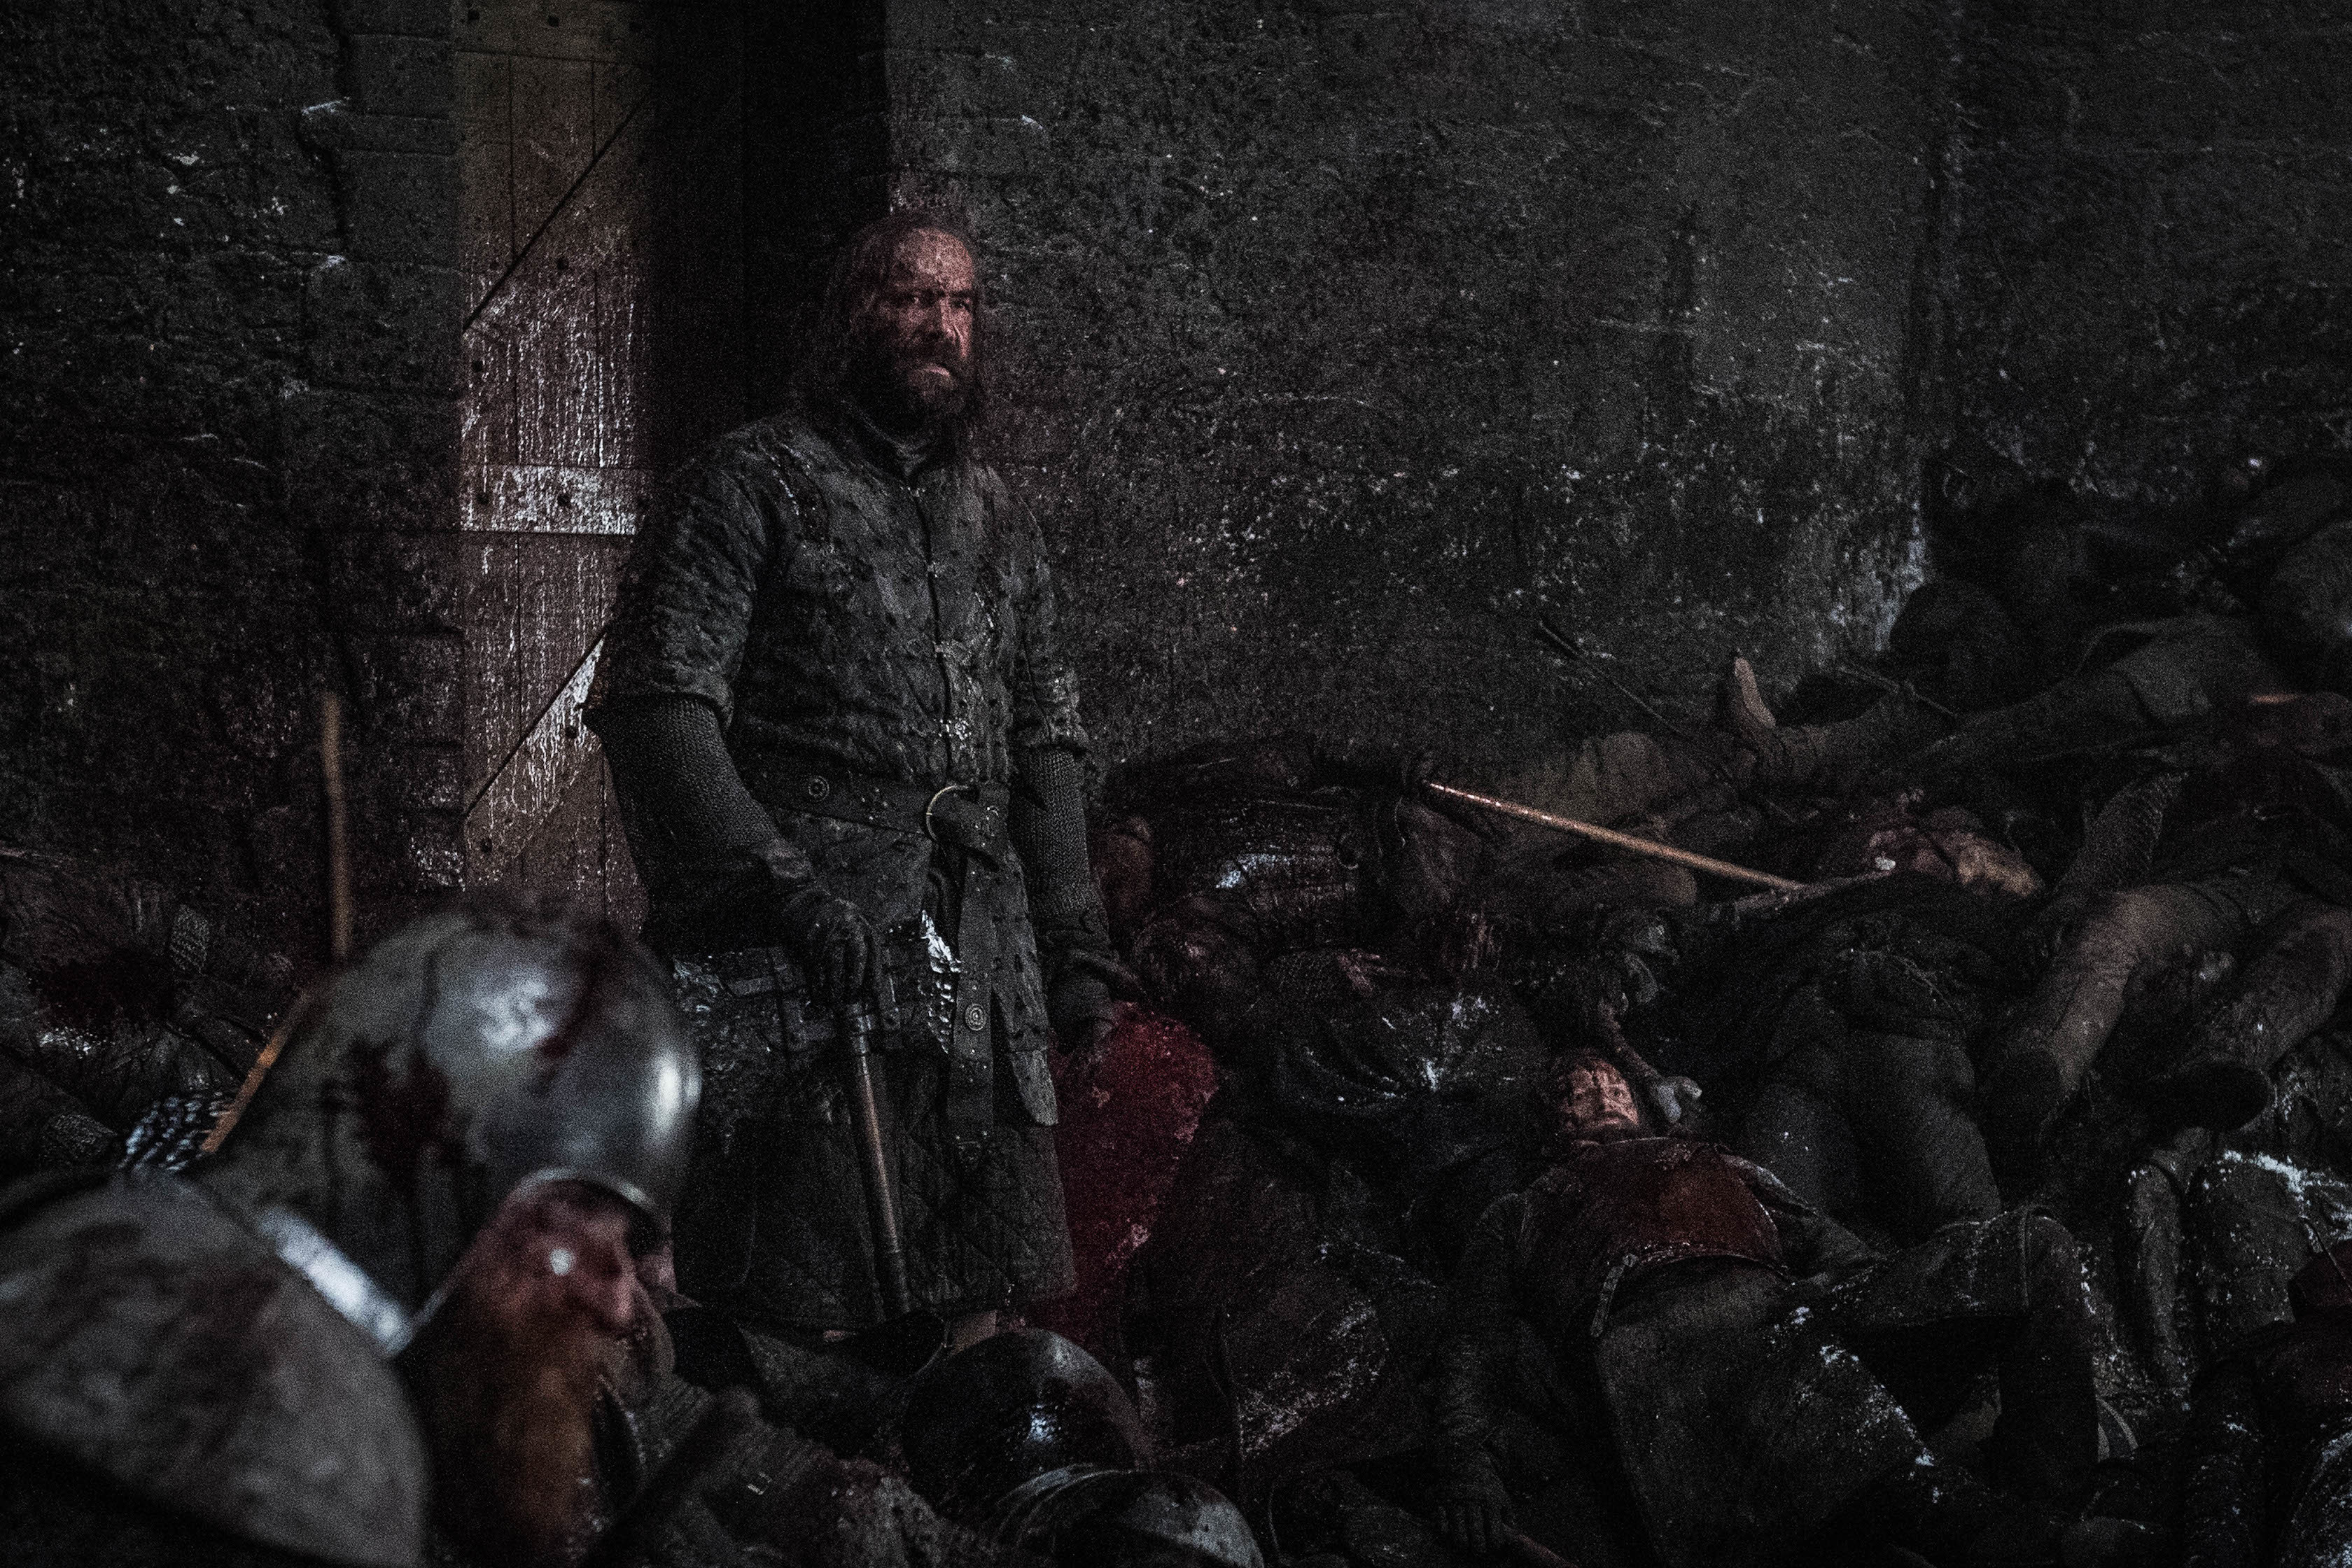 8x03 - The Long Night - The Hound